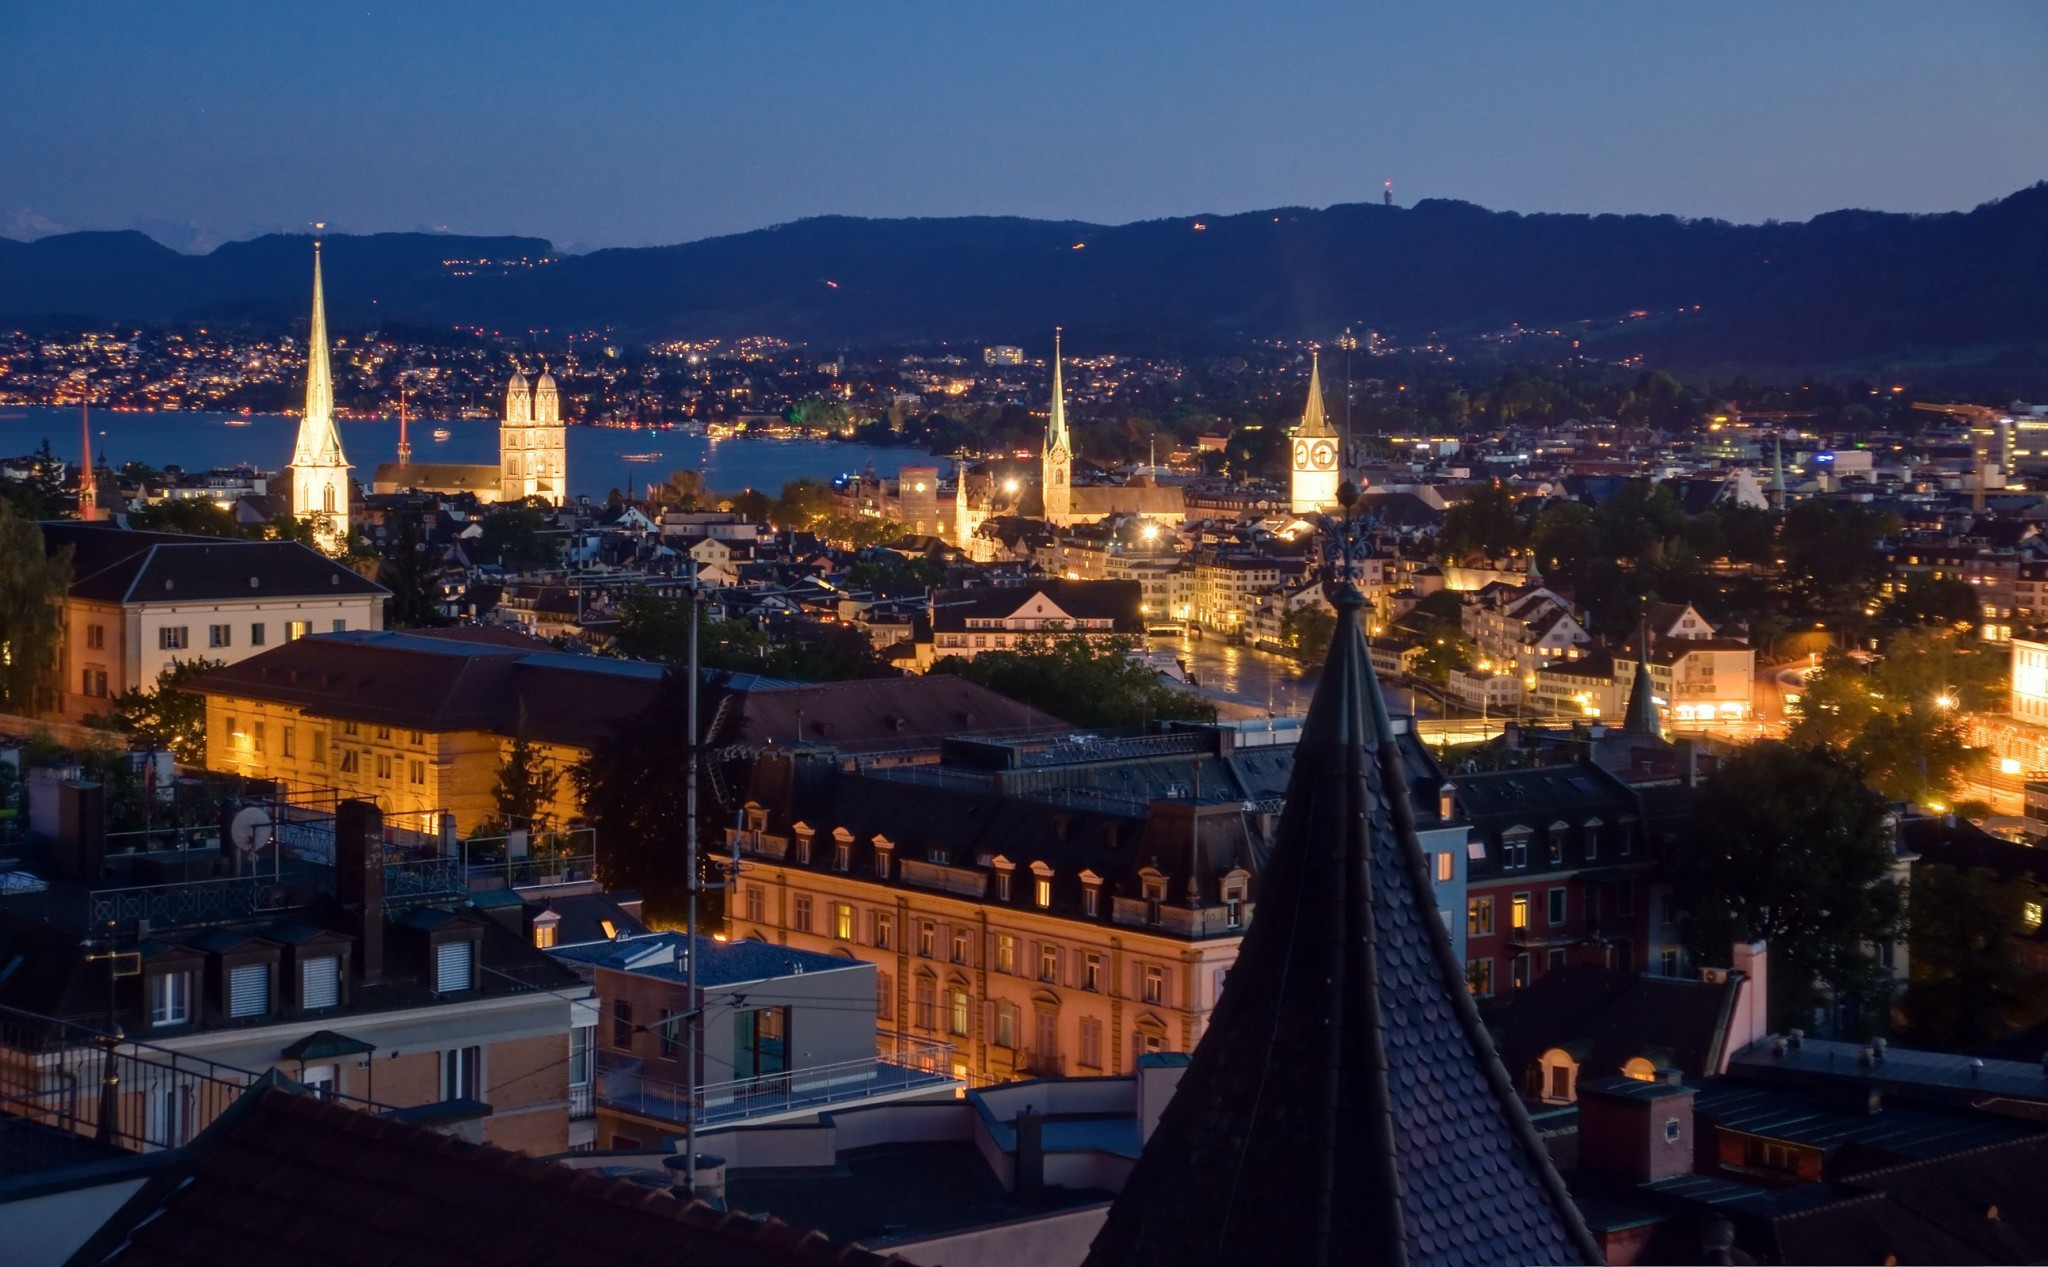 Zurich Switzerland at night